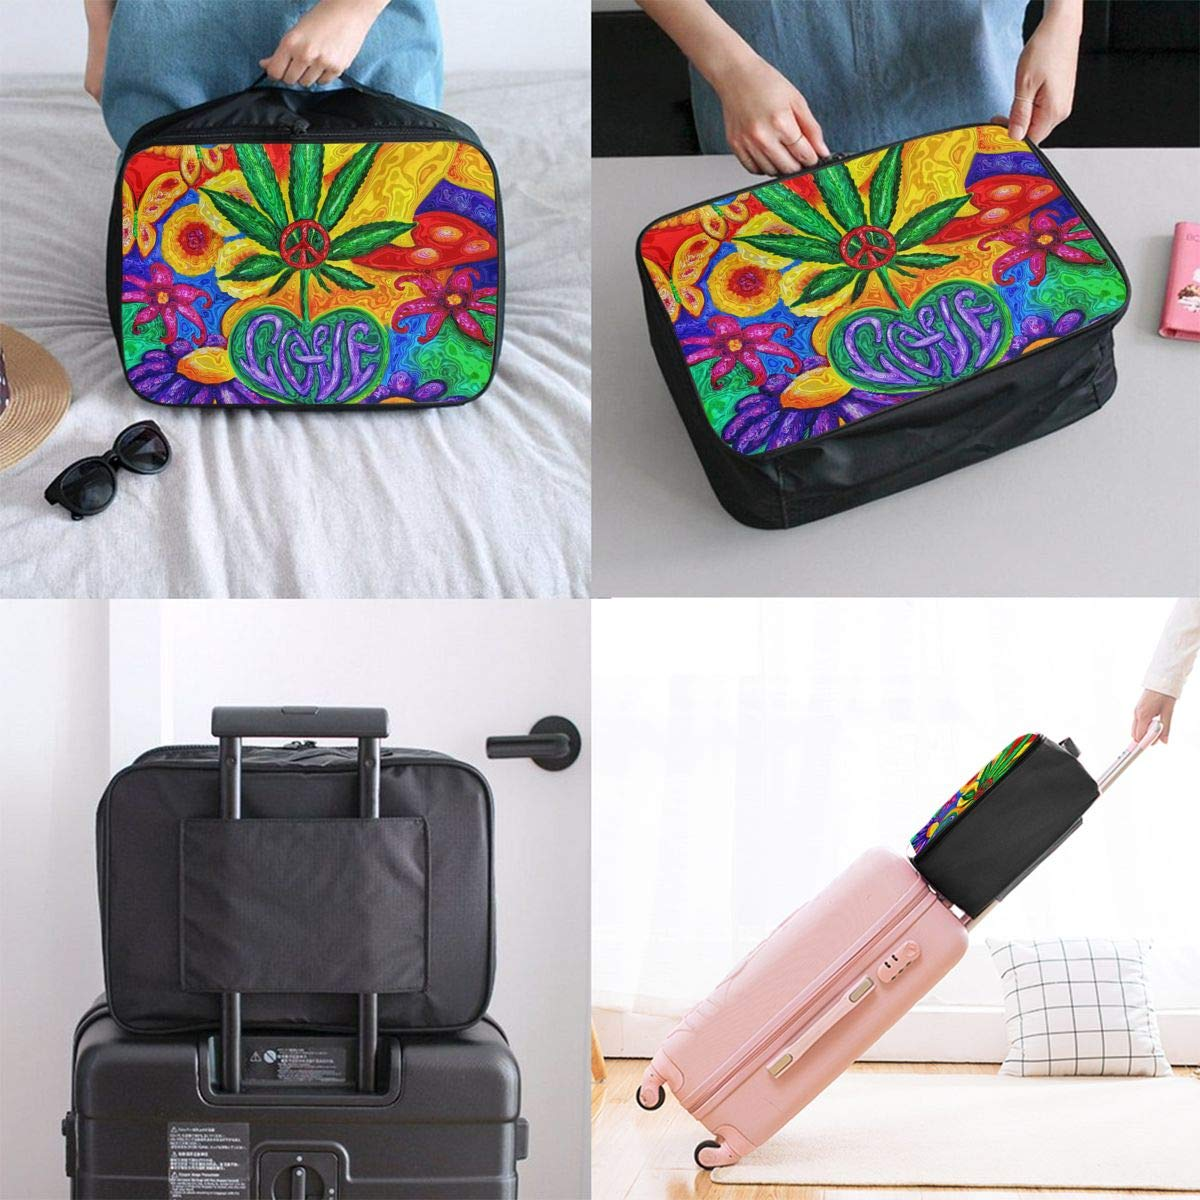 Peace And Love Marijuana Weed Travel Duffel Bag Durable Luggage Organizer For Holiday Gym Storage Bag Weekend Tote Bag-Pack of 1